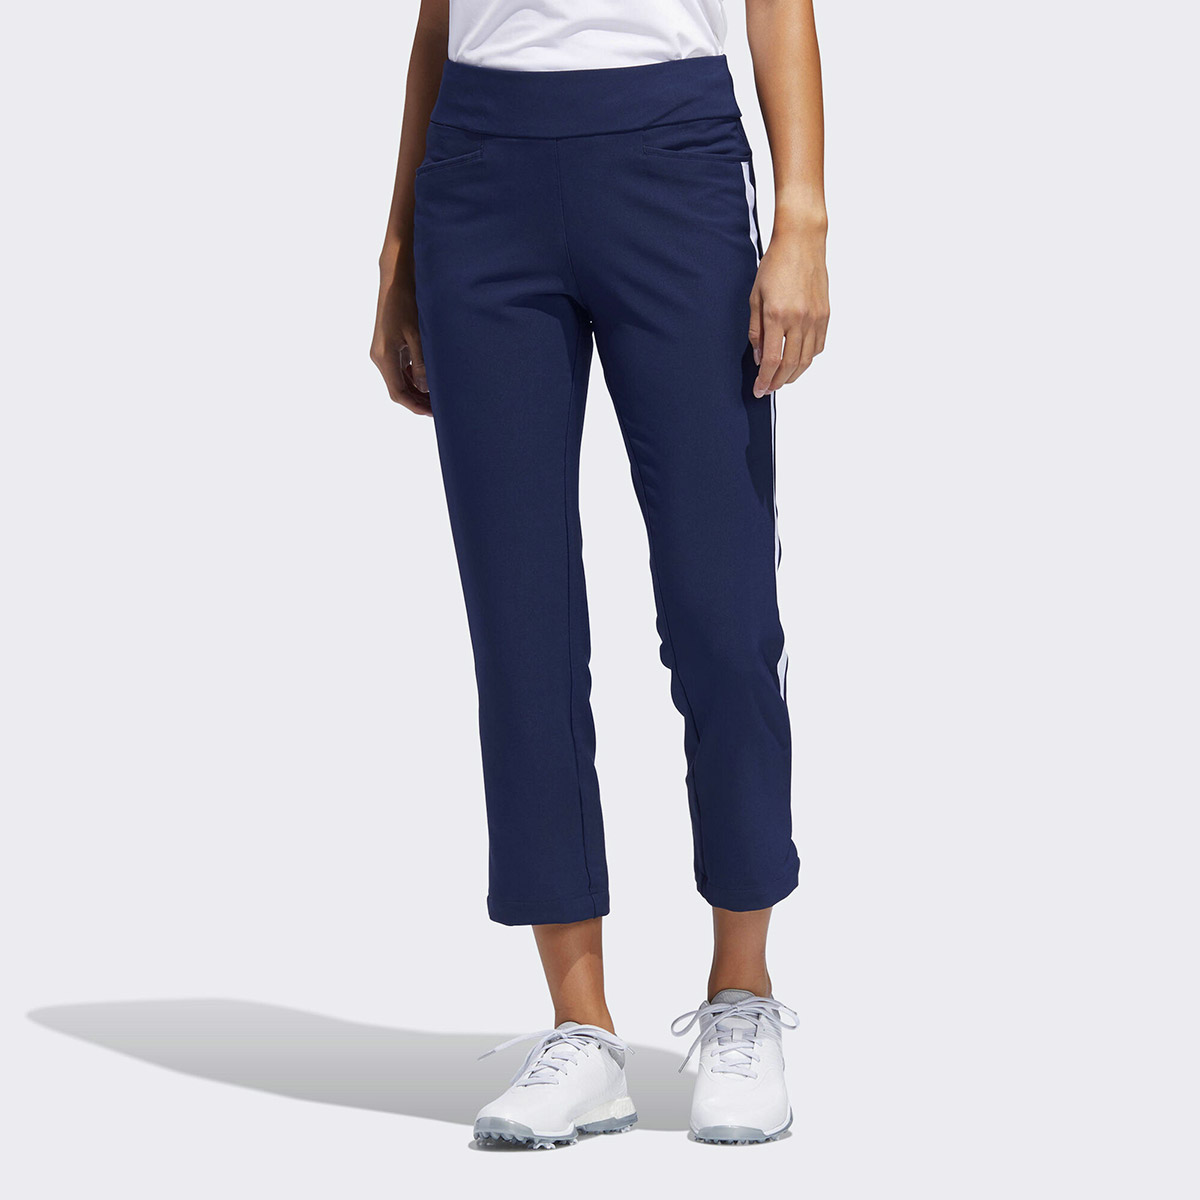 b6ce9bde80 adidas Golf Novelty Flair Cropped Ladies Trousers